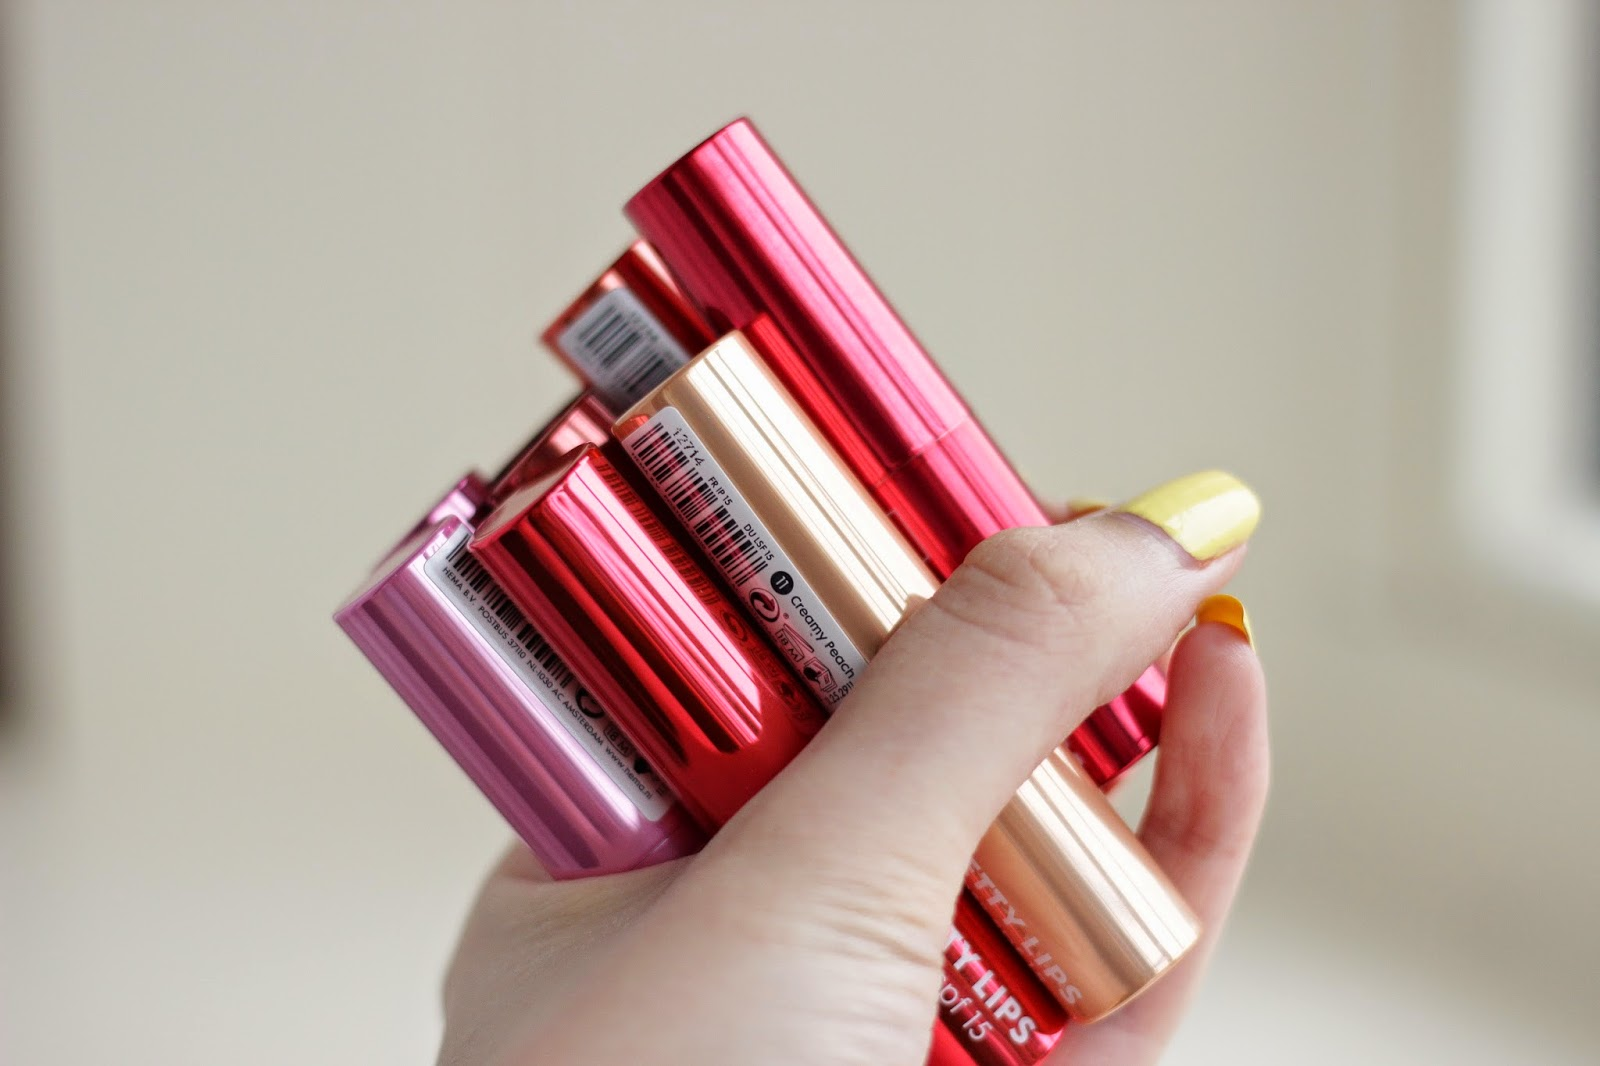 hema pretty lips lipgloss